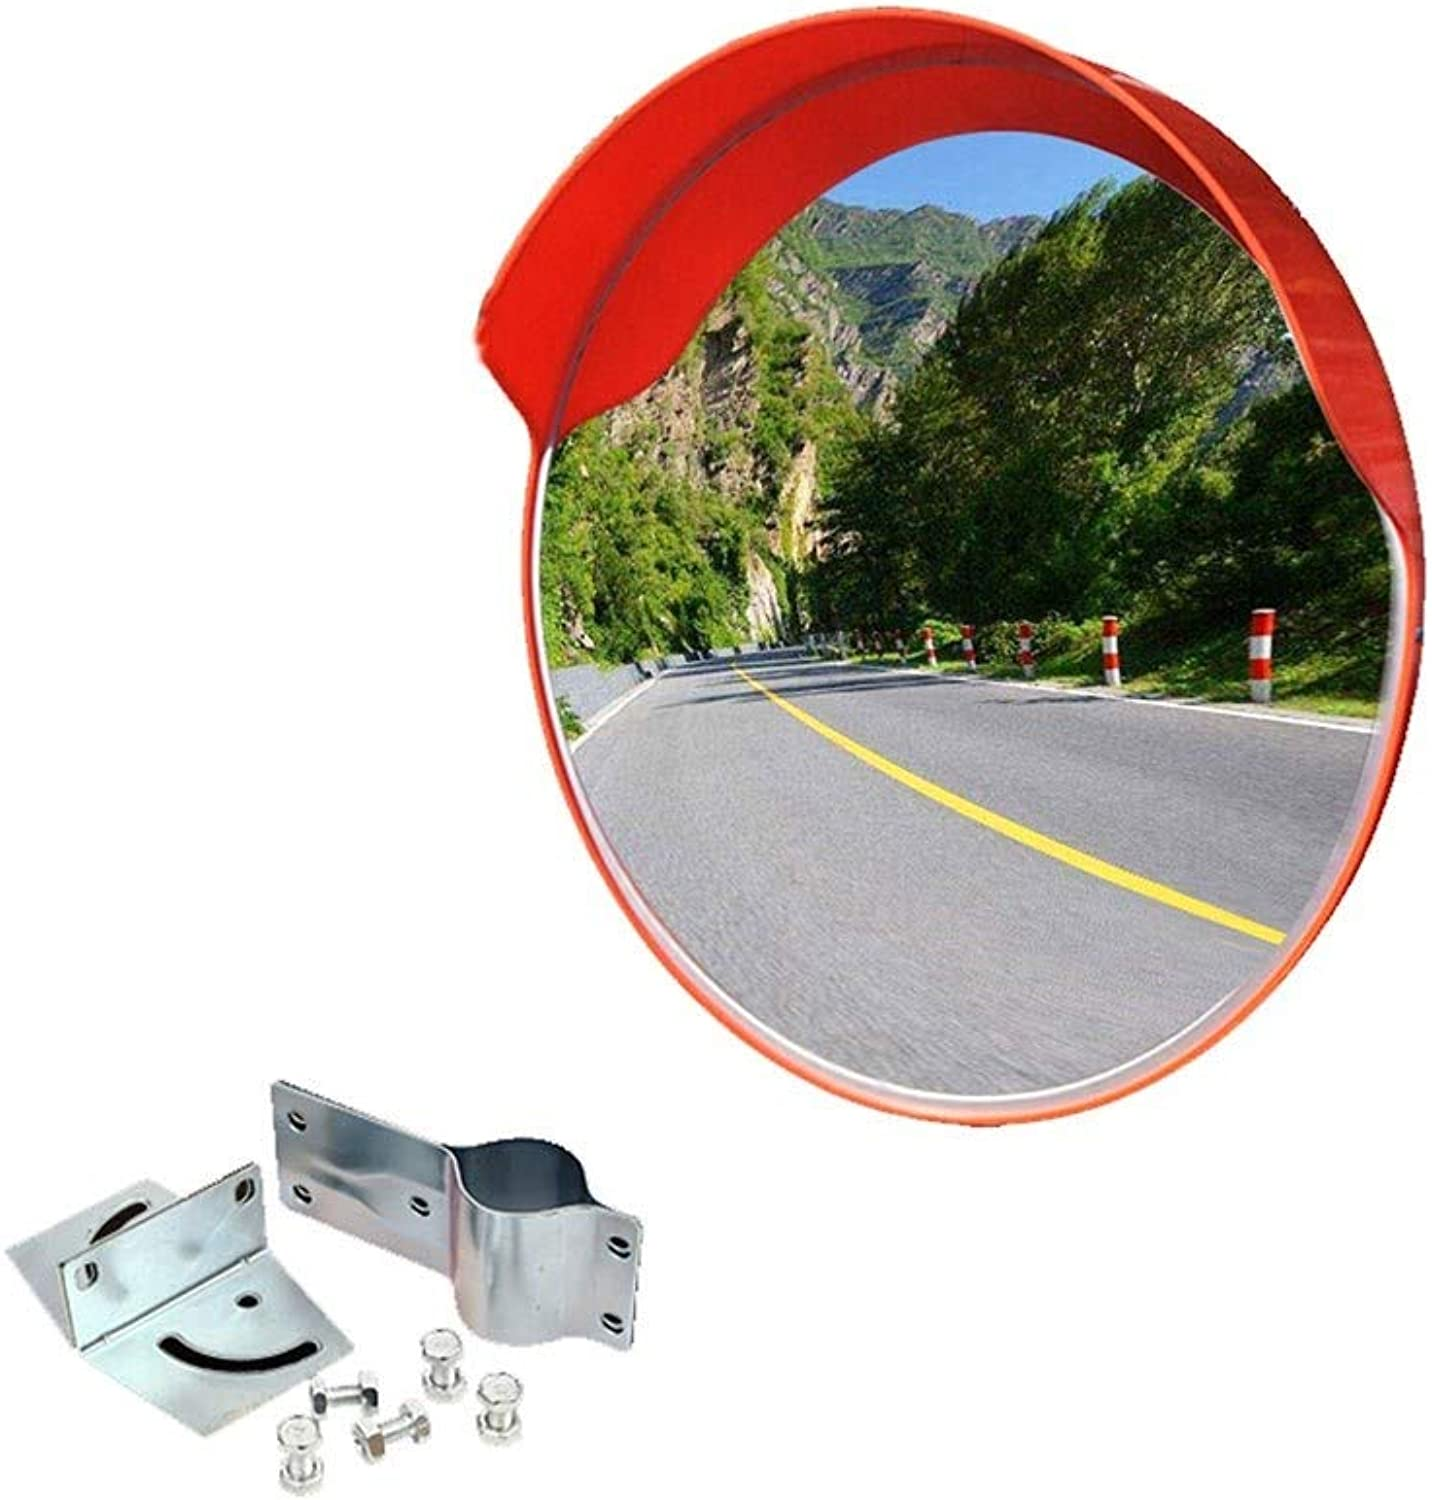 Traffic Security Blind Spot Mirrors Driveway Alley Garage Hospital Wide Angle Mirror Car Park,60cm